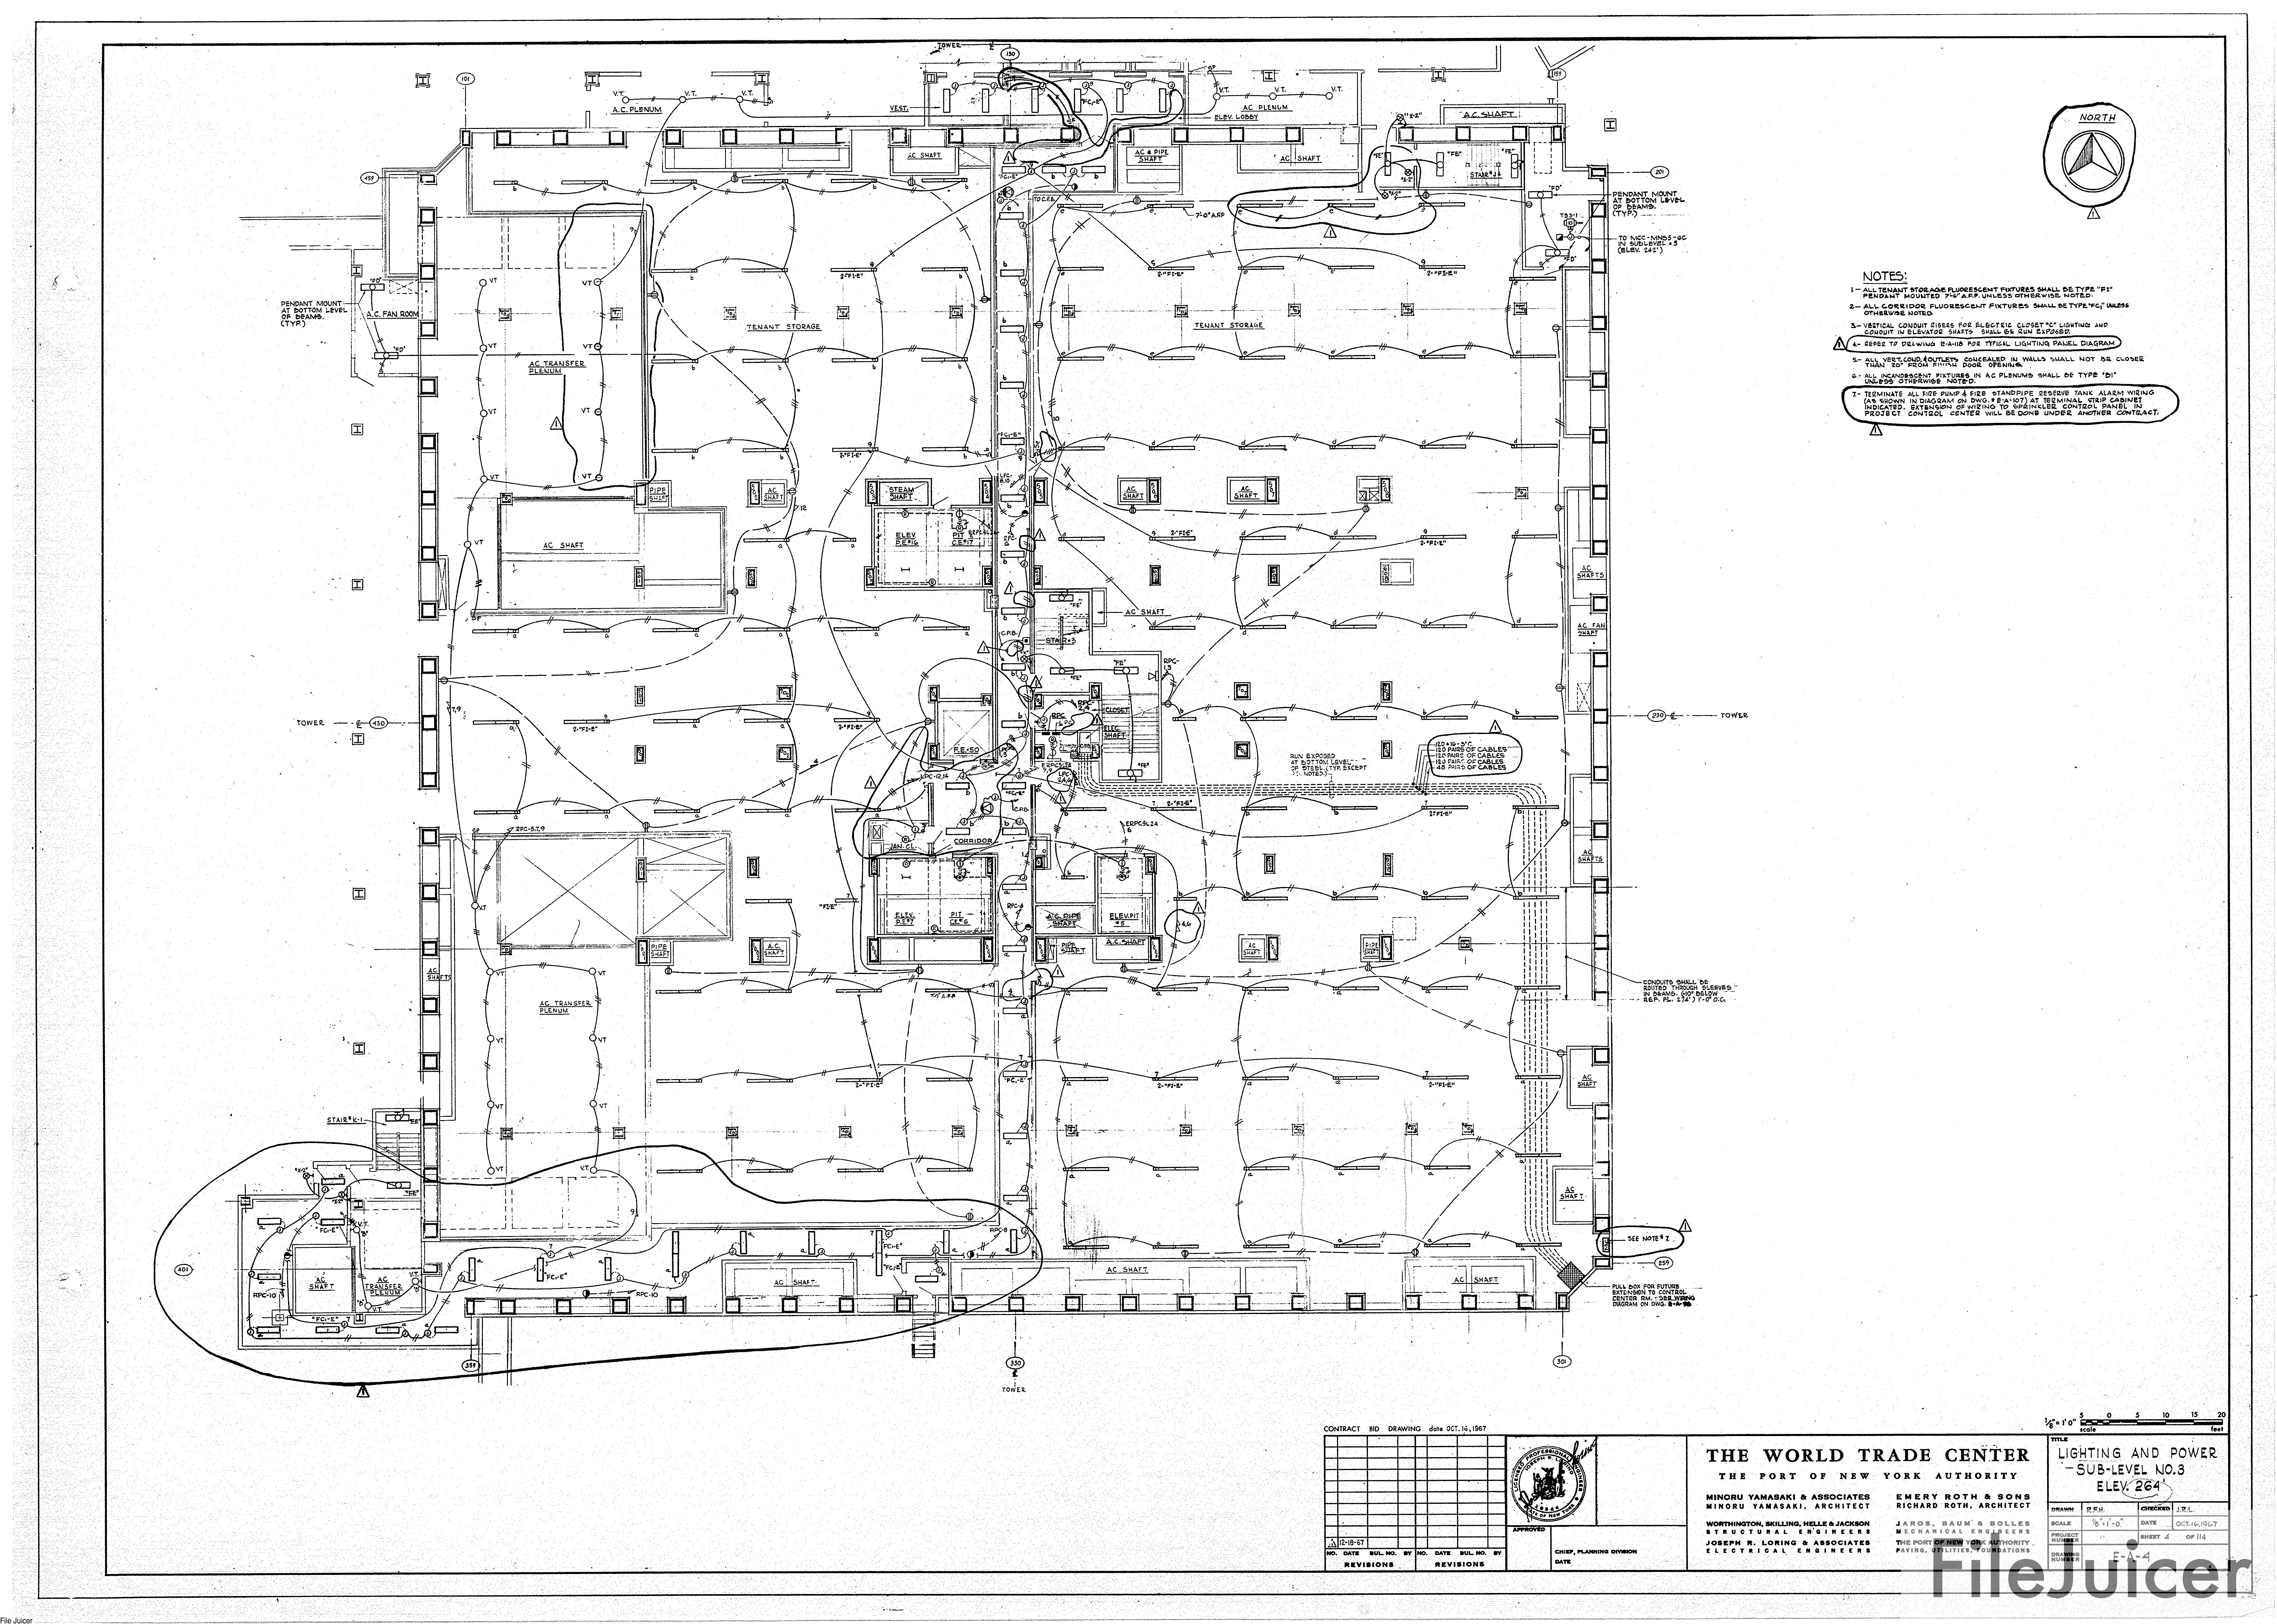 Electrical Plan Table Not Lossing Wiring Diagram E Drawing Of World Trade Center Tower A Drawings Rh Ae911truth Org Floor Plans